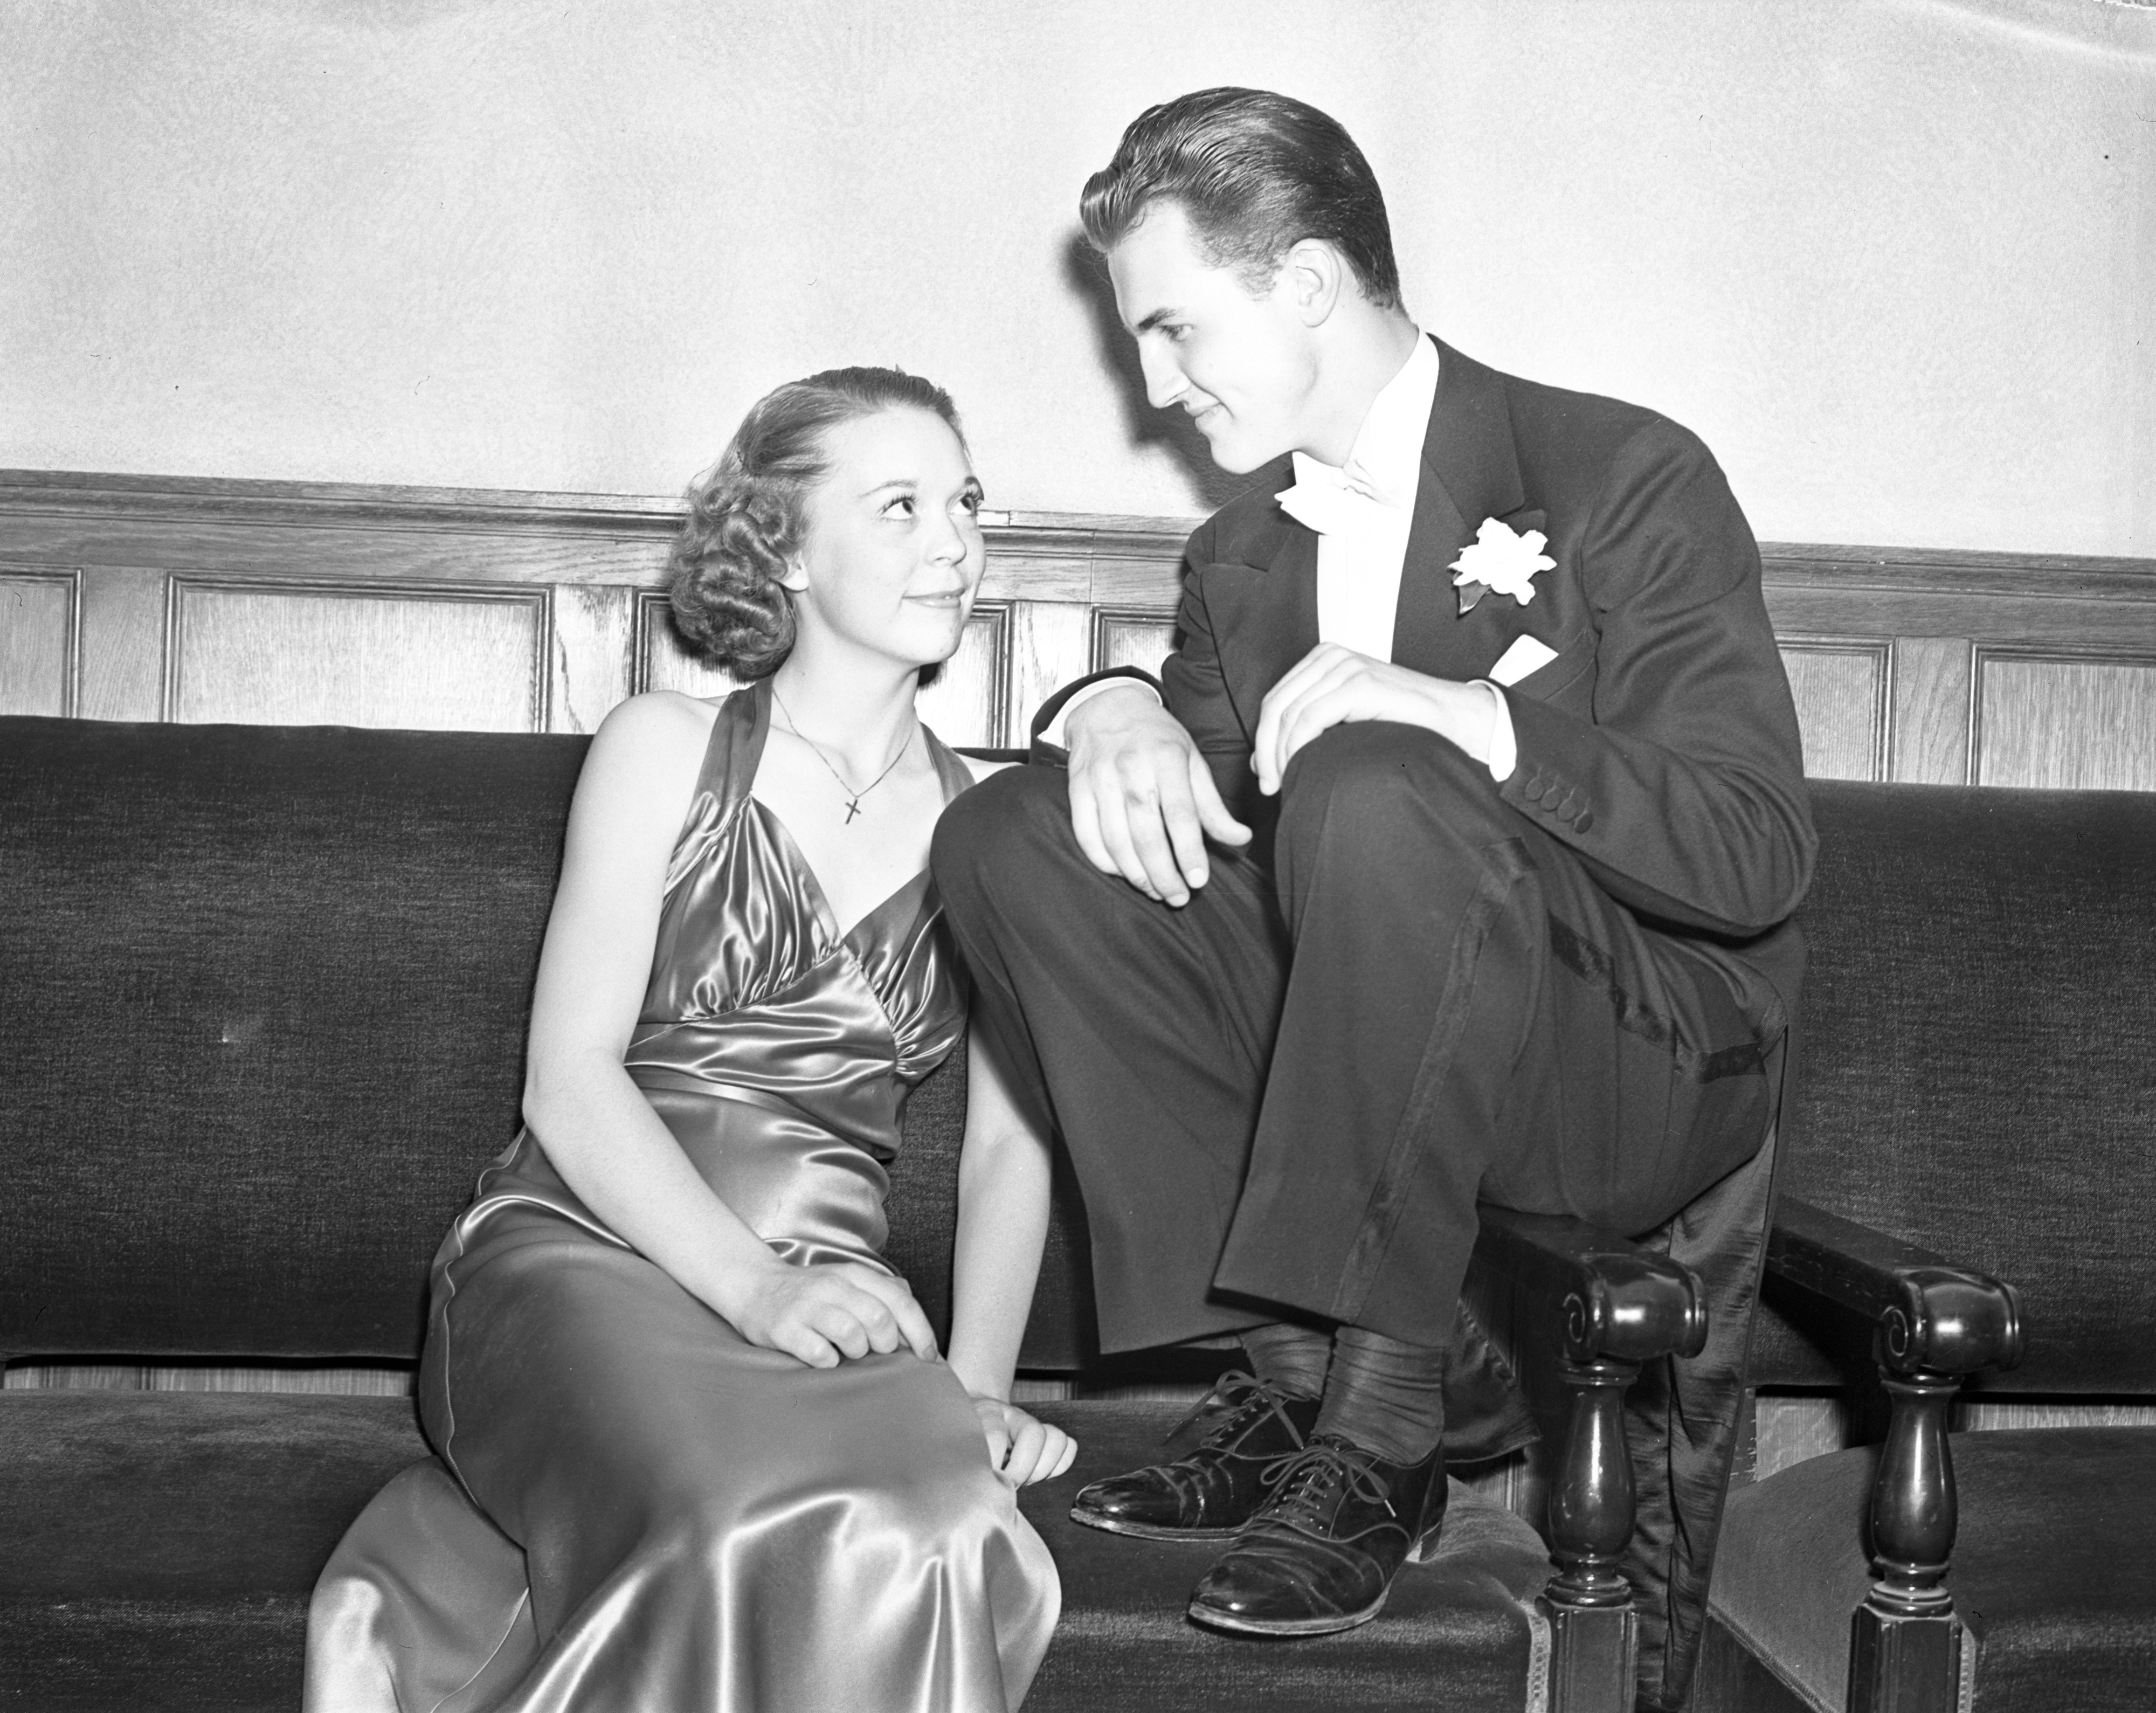 Image from At the Easter Ball, April 19, 1938